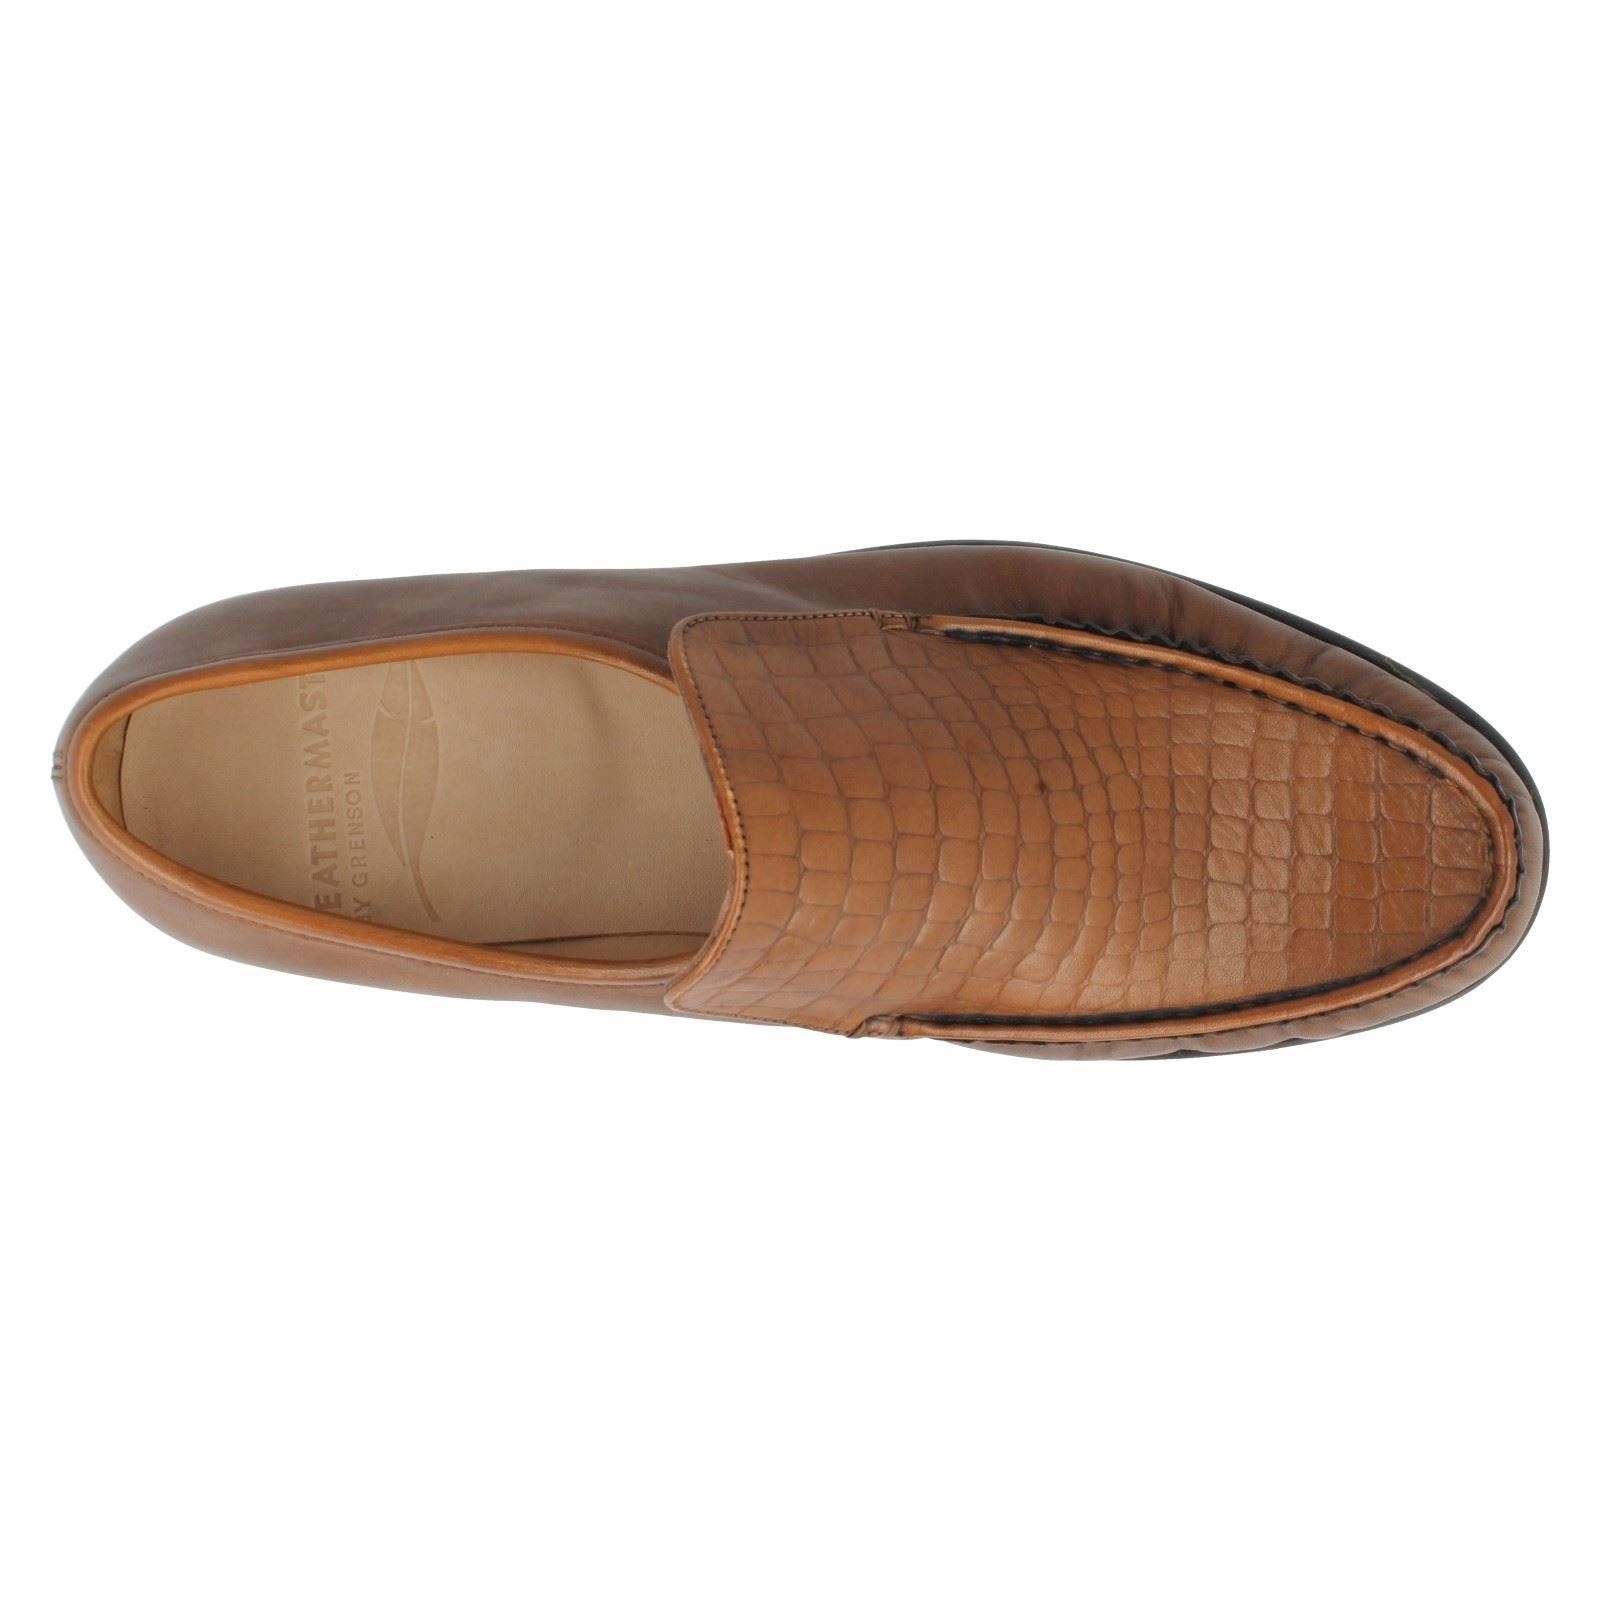 G Uomo Grenson Formal Moccasin Schuhes Fit G  Label - Montana 9684 79ac62